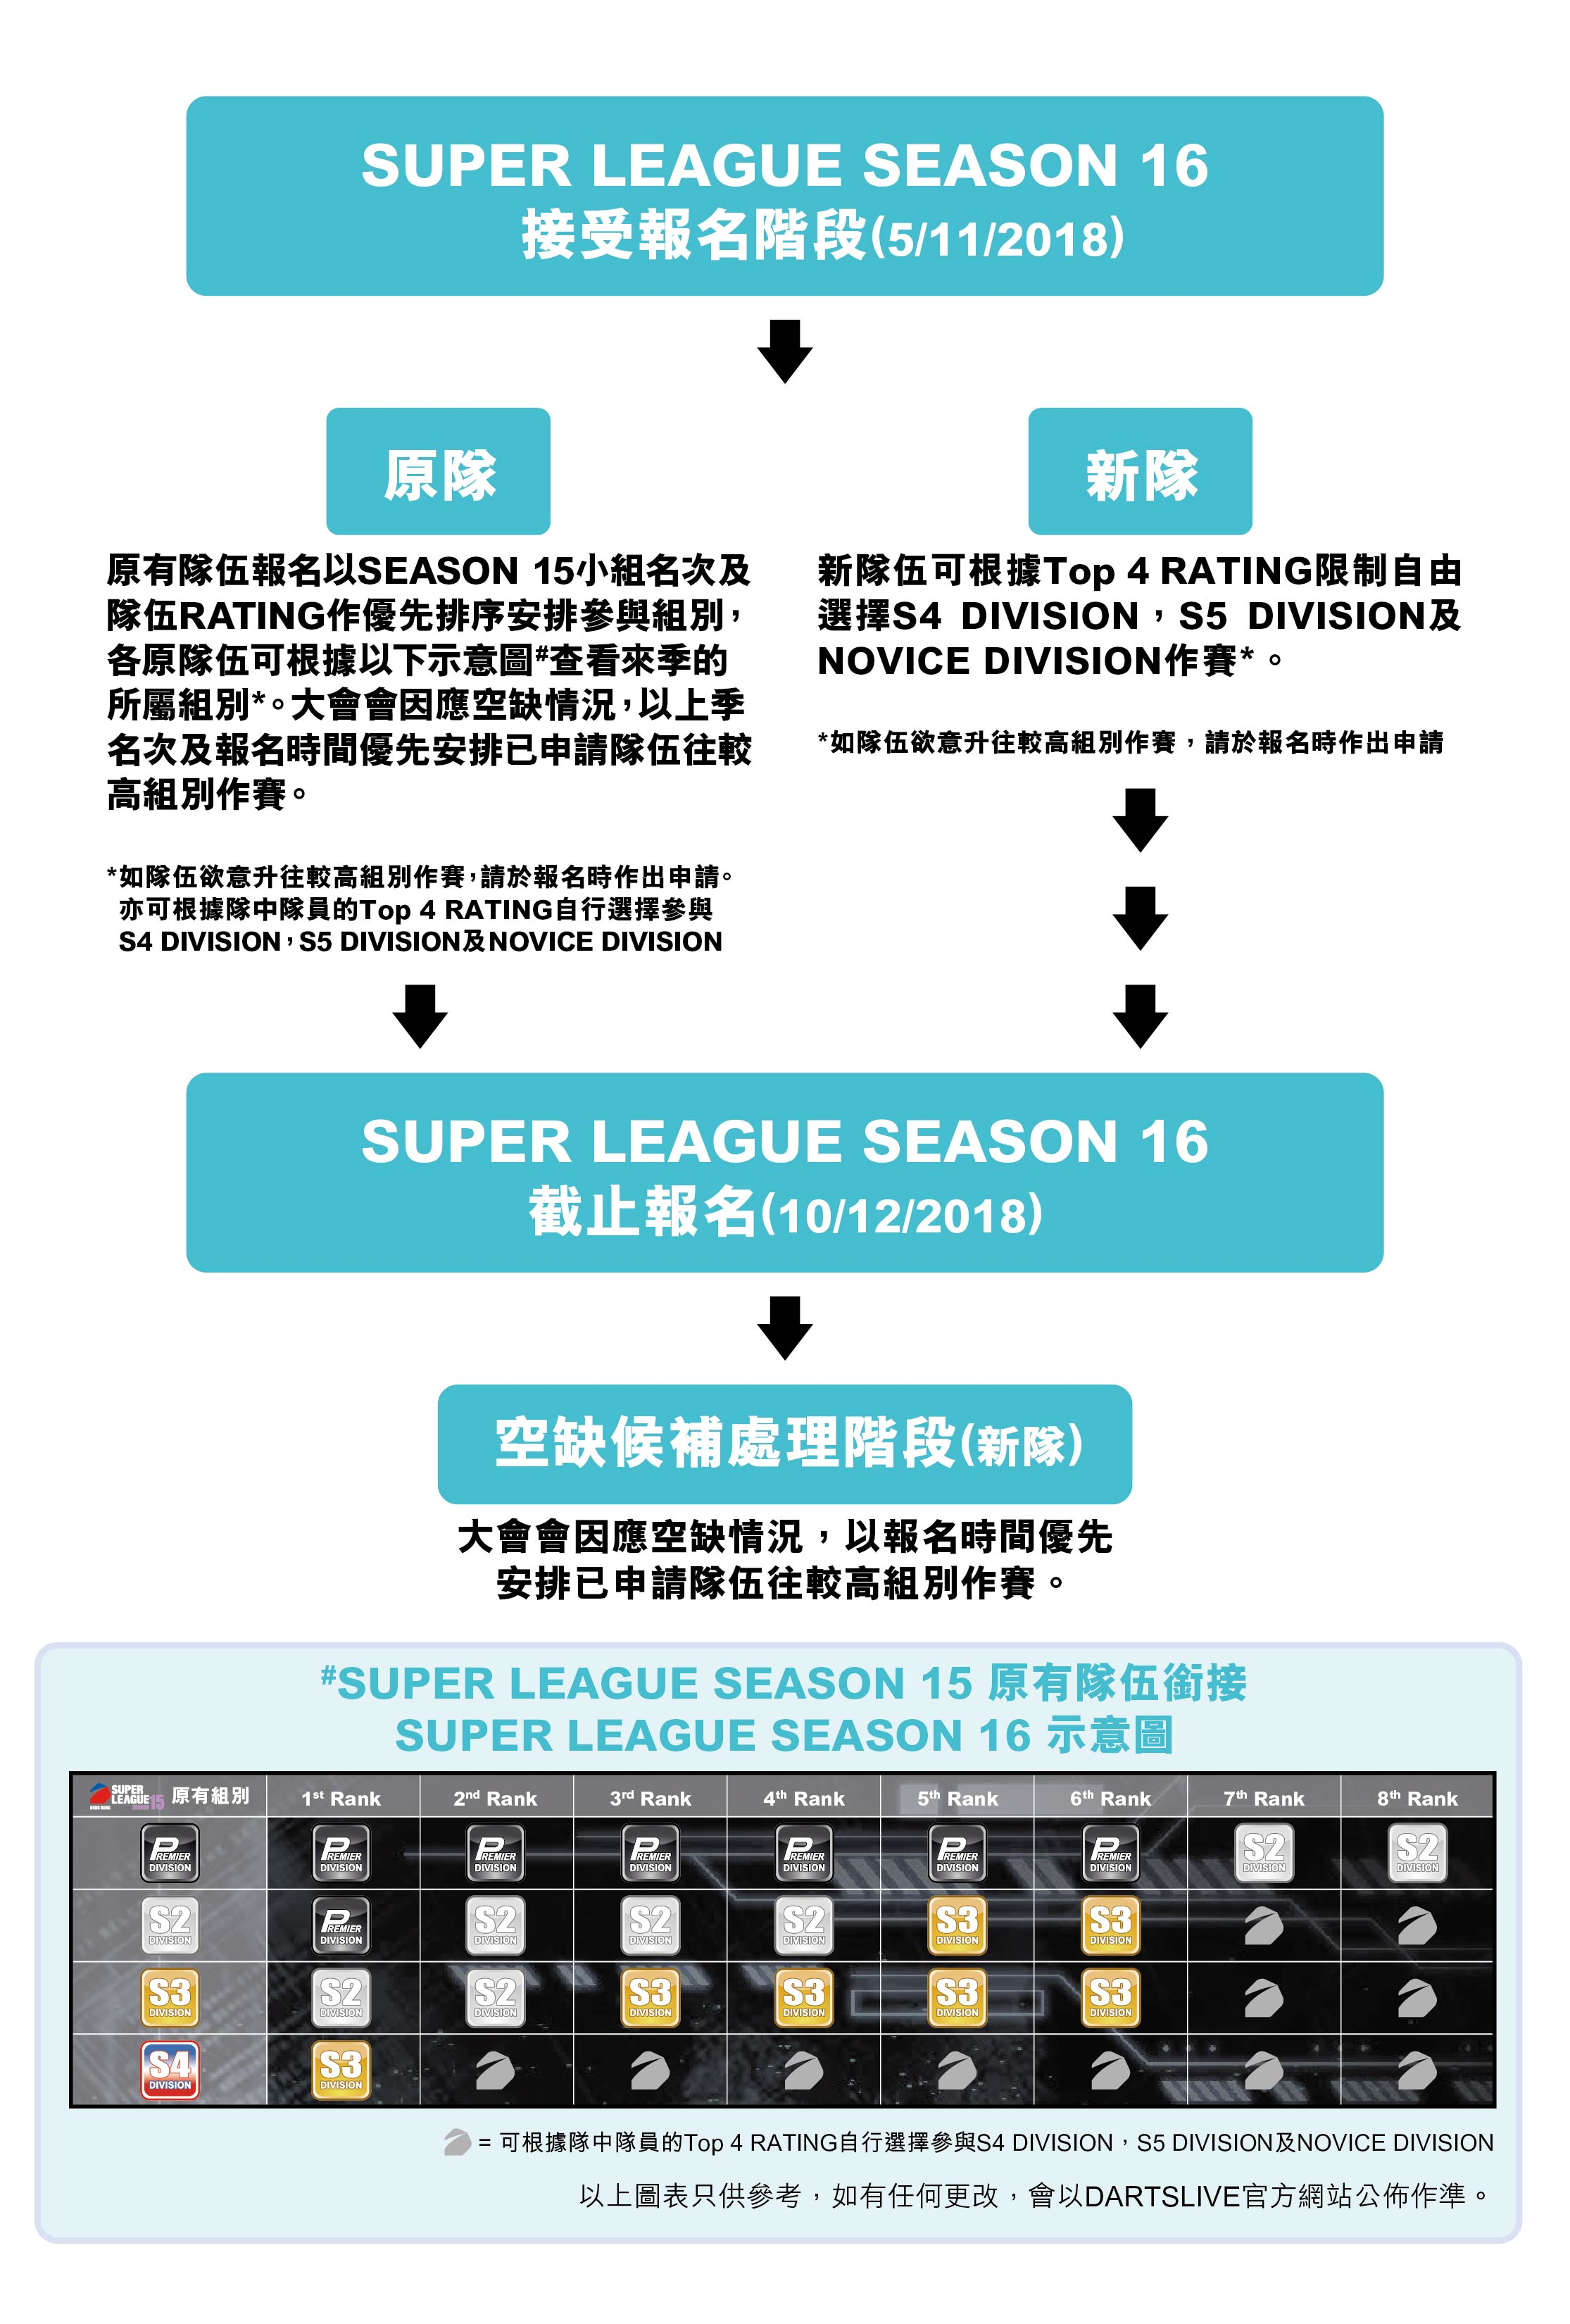 SUPER LEAGUE SEASON 16